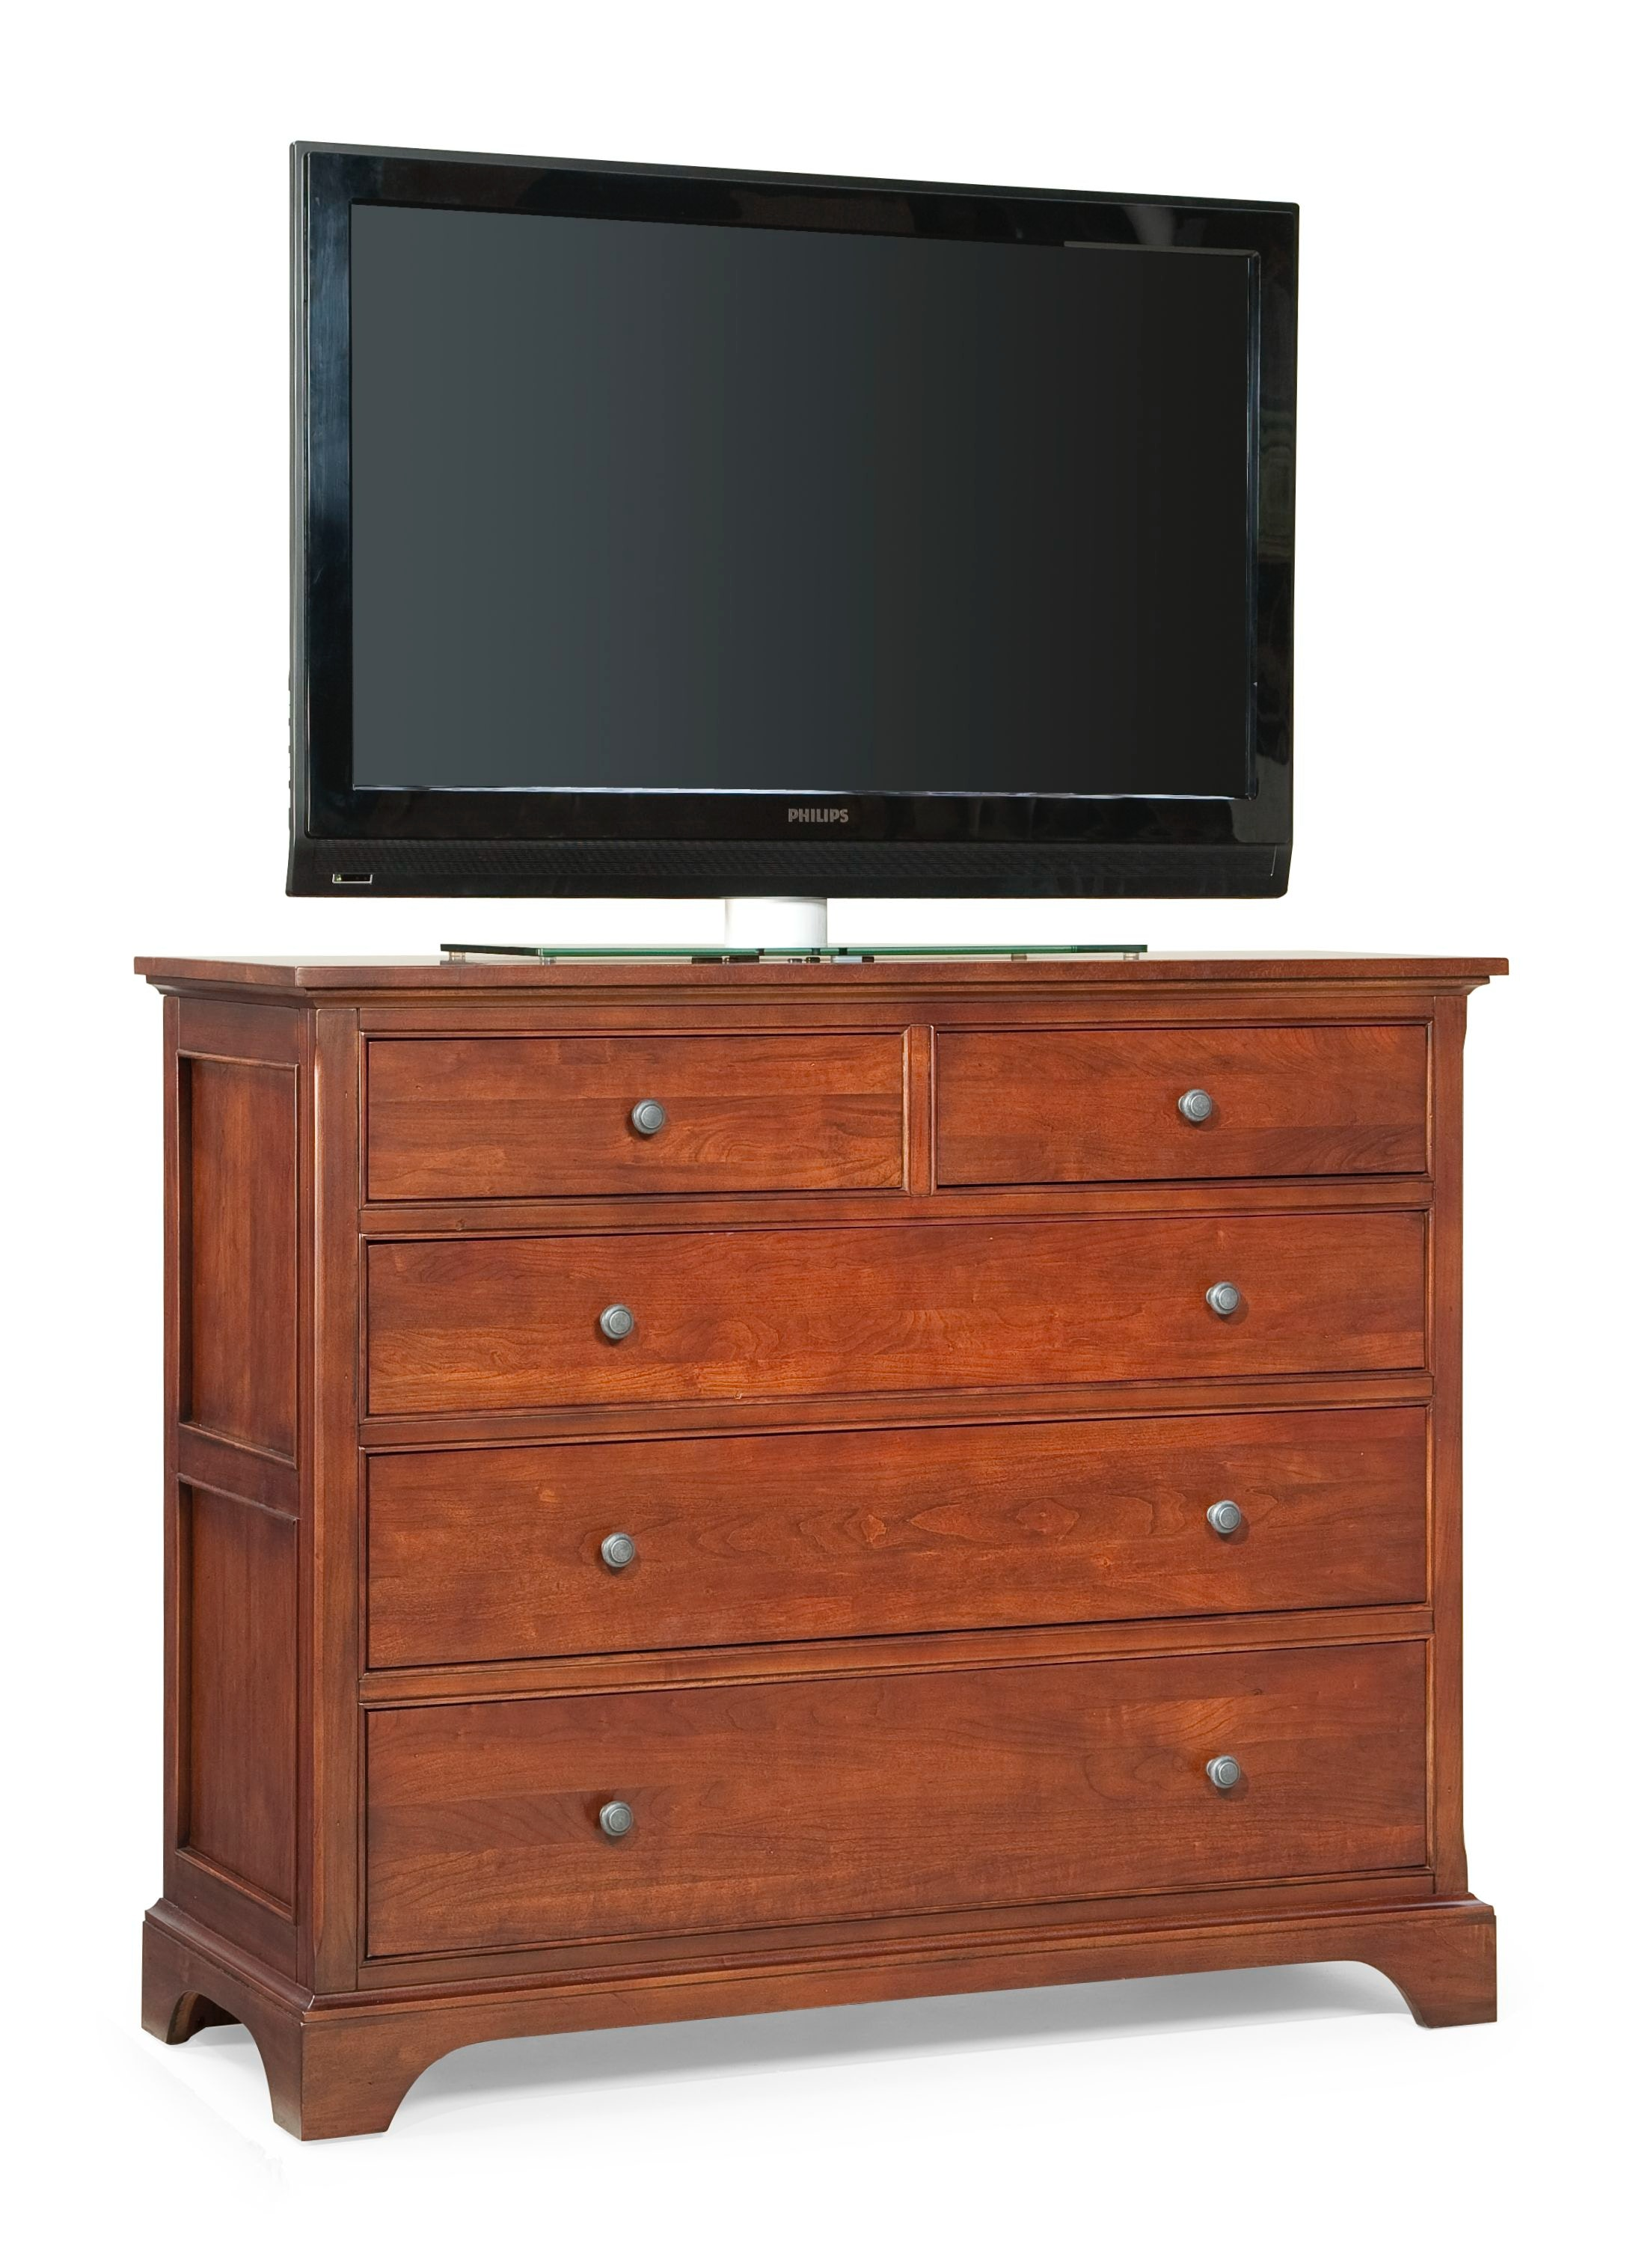 Cresent Fine Furniture Retreat Cherry Small Media Dresser 1503